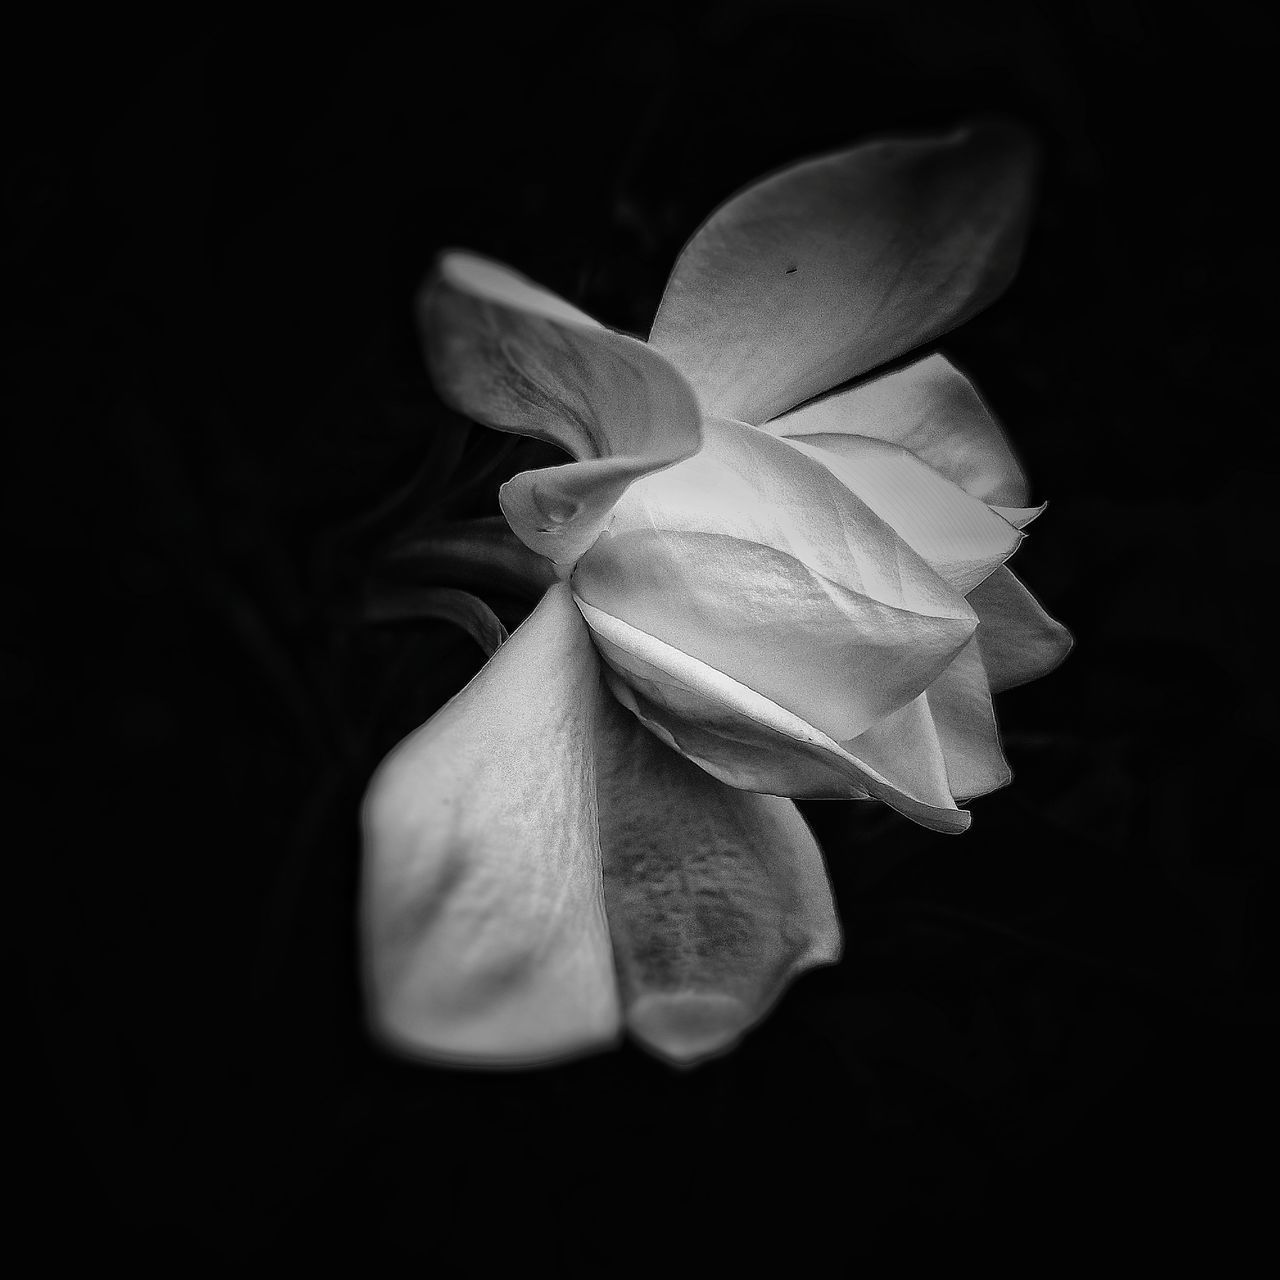 CLOSE-UP OF WHITE ROSE OVER BLACK BACKGROUND